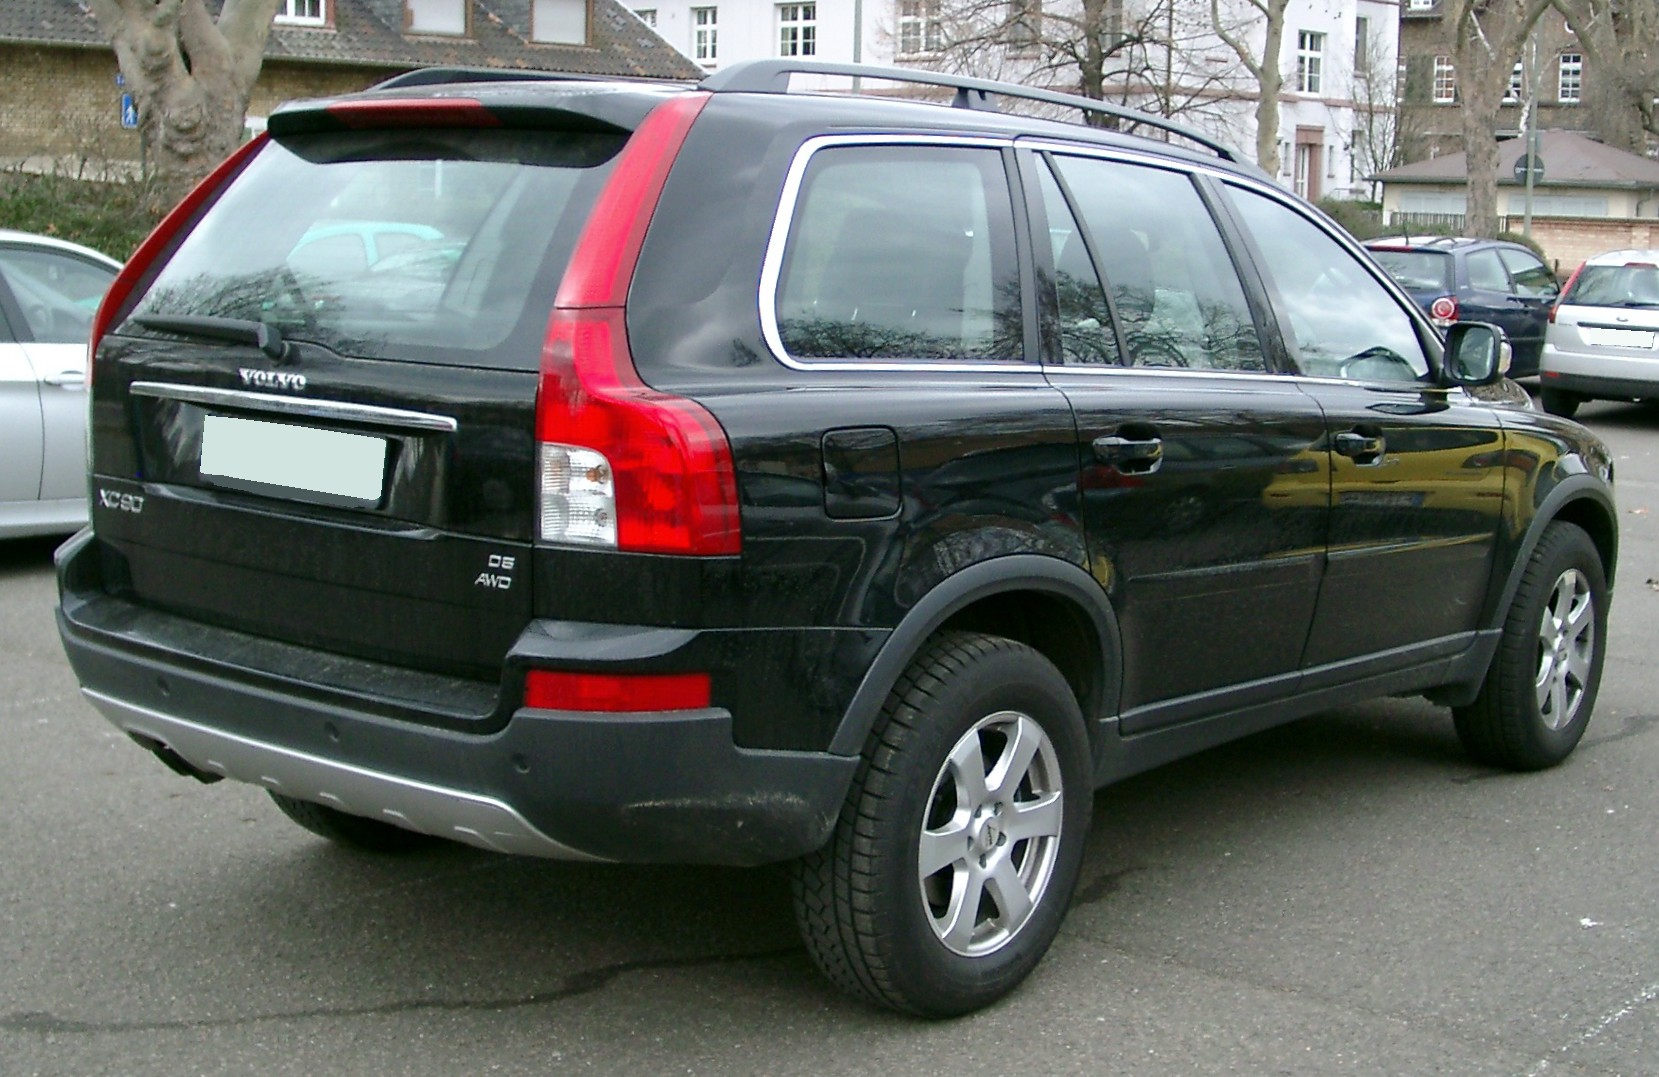 Volvo Xc90 Wikipedia File Rear 20080226 Jpg Wikimedia Commons